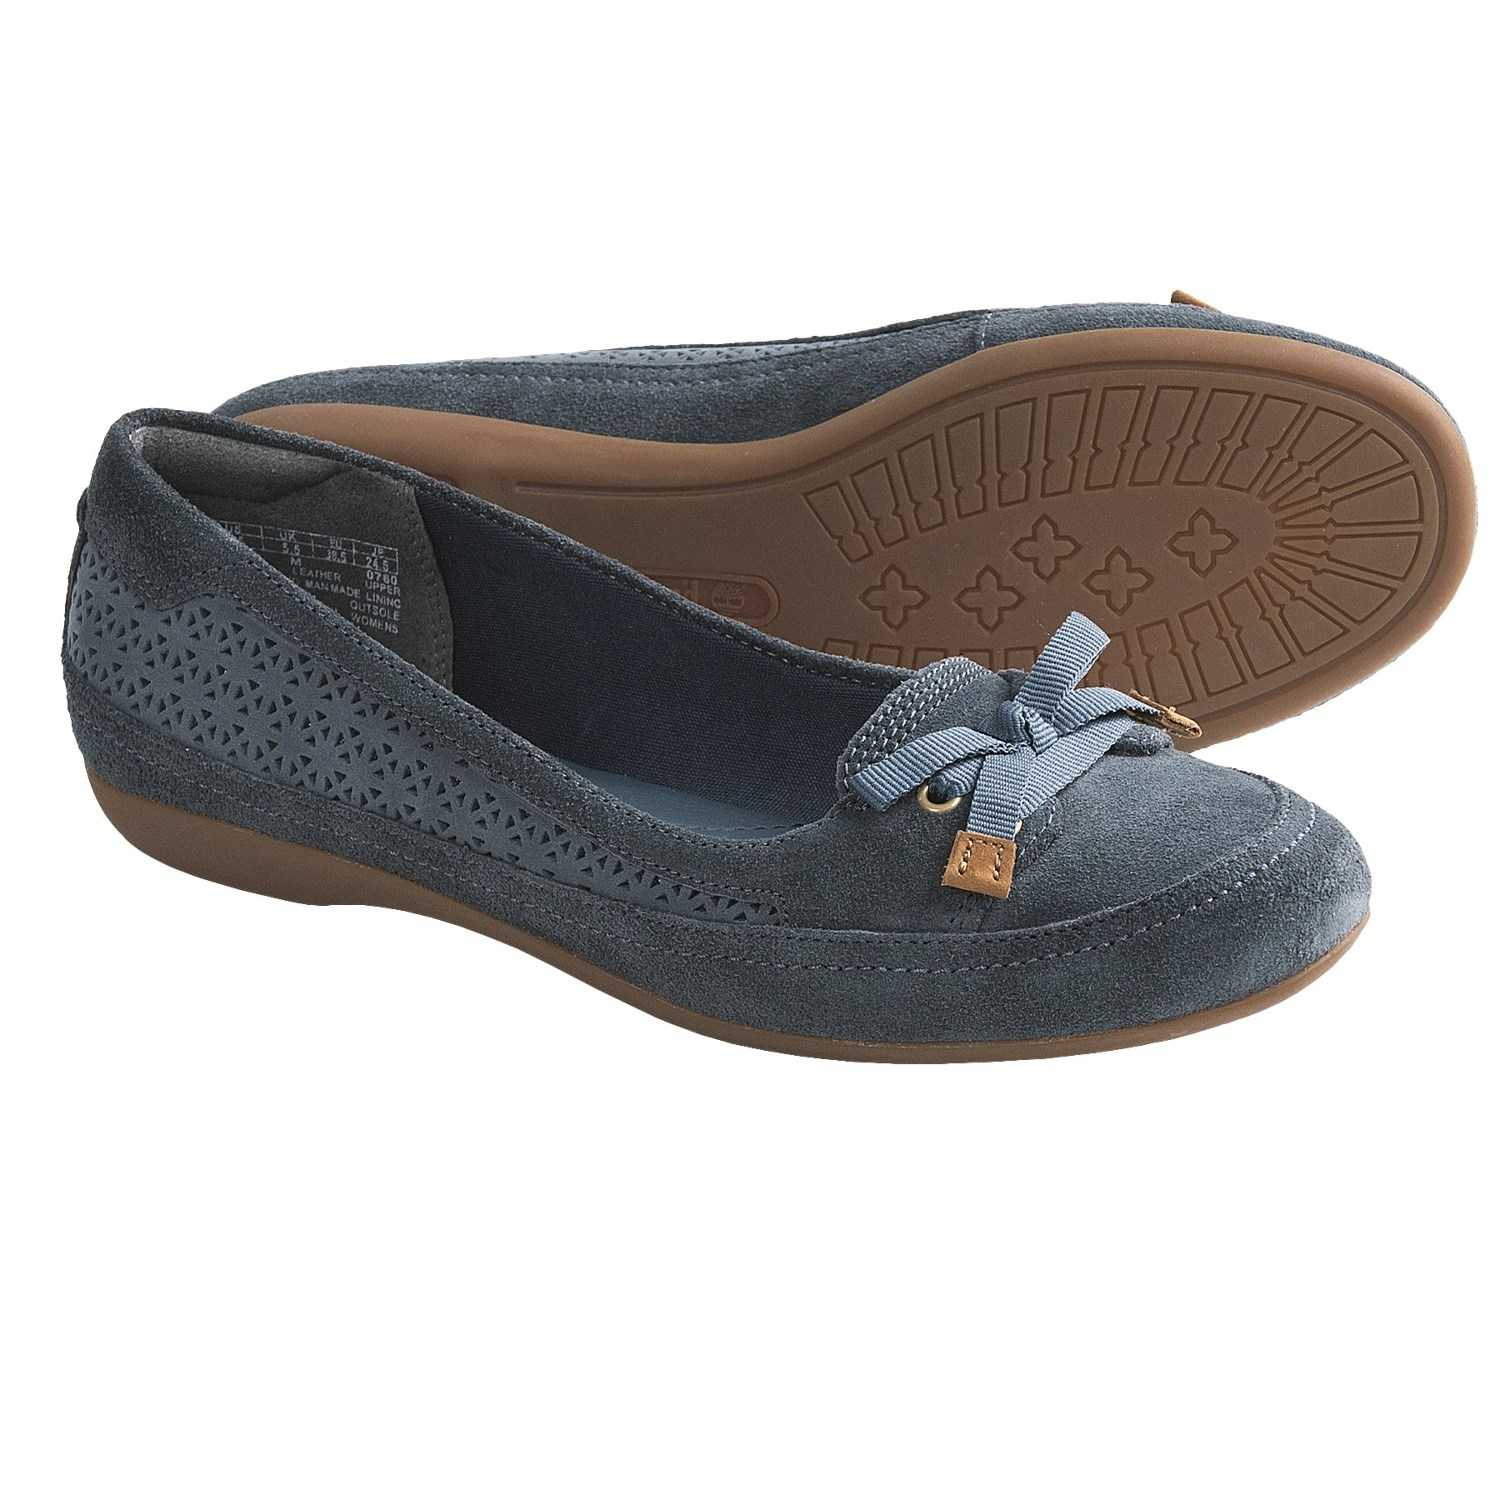 Timberland Earthkeepers Slip On Shoes